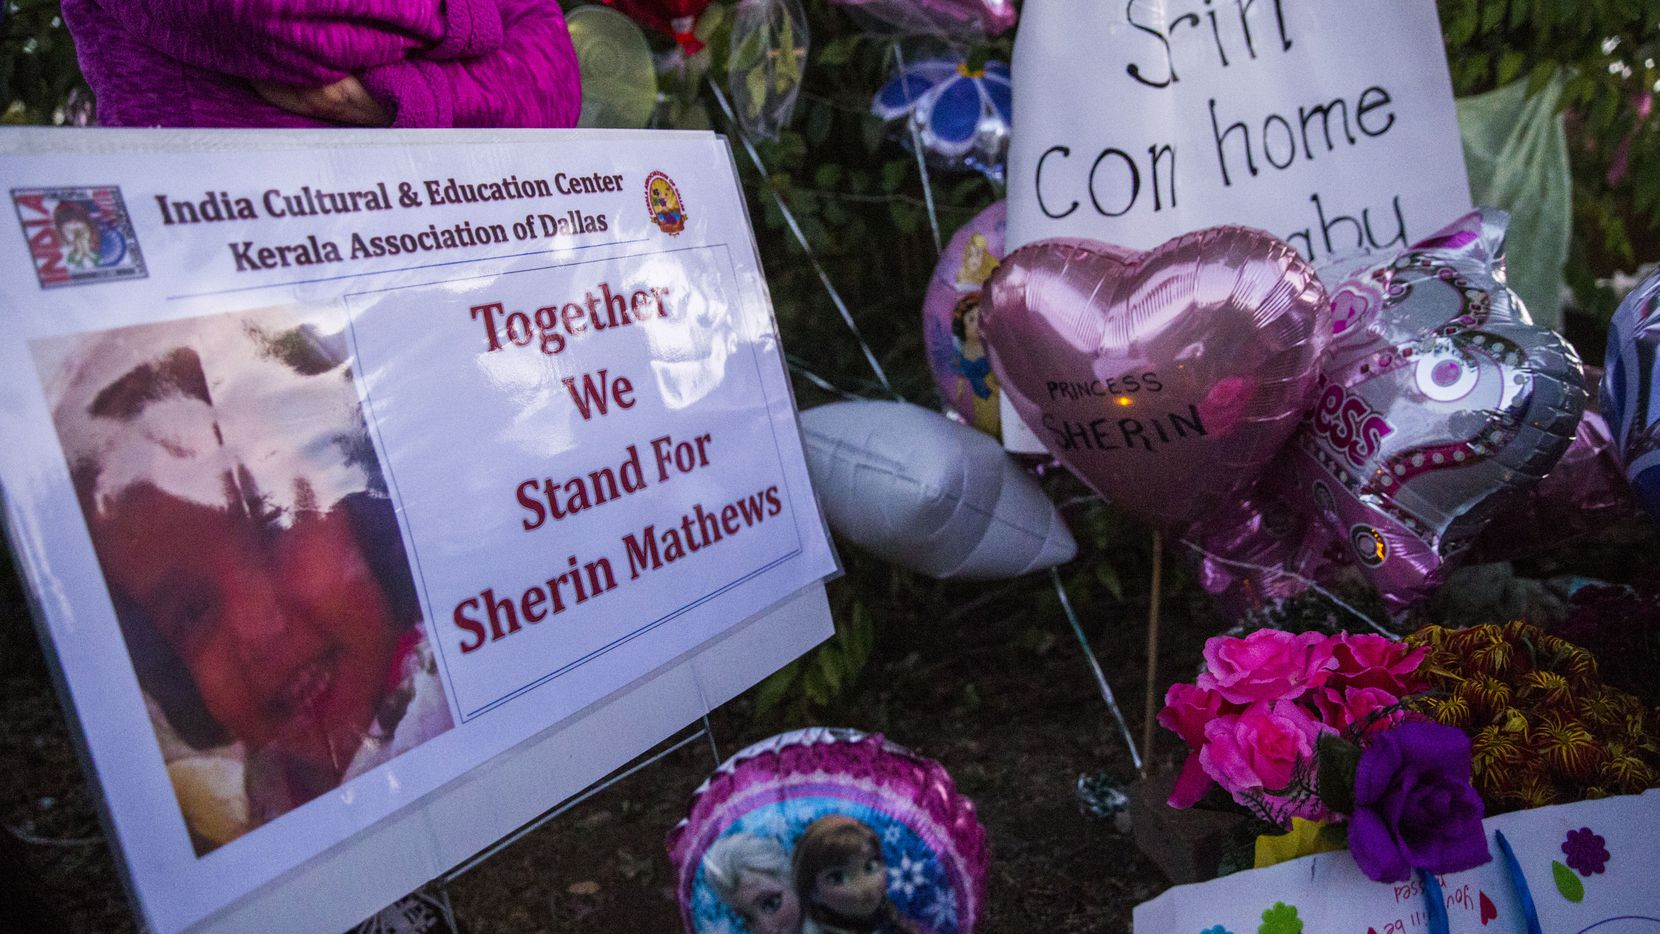 Signs, flowers, balloons and other items collected at a memorial for 3-year-old Sherin Mathews on the day her body was found in late October.